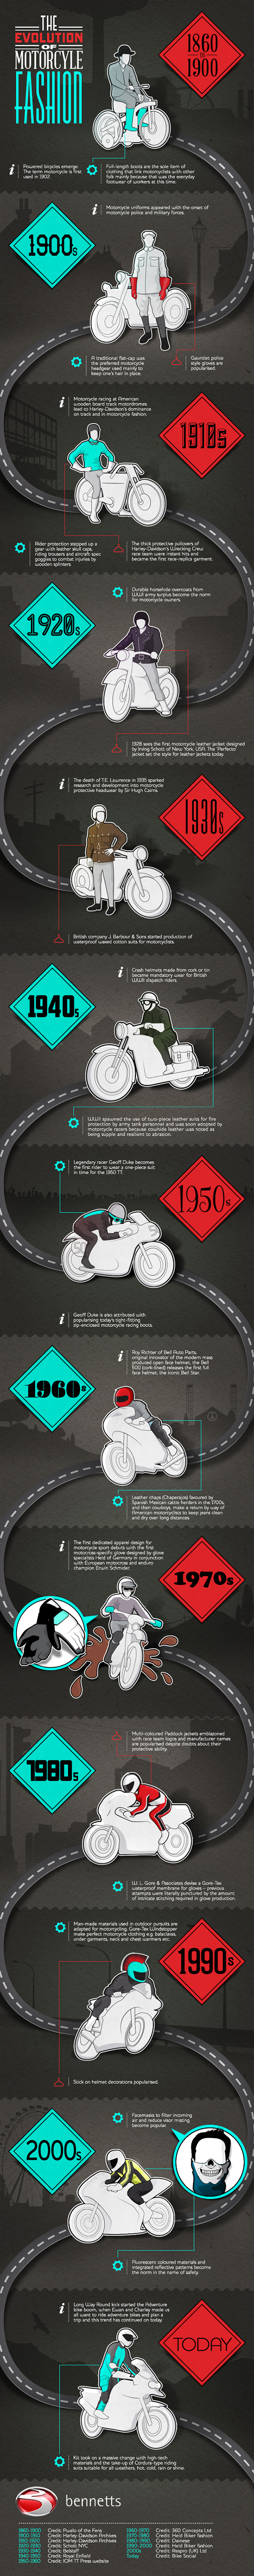 The-Evolution-of-Motorcycle-Fashion-Infographic